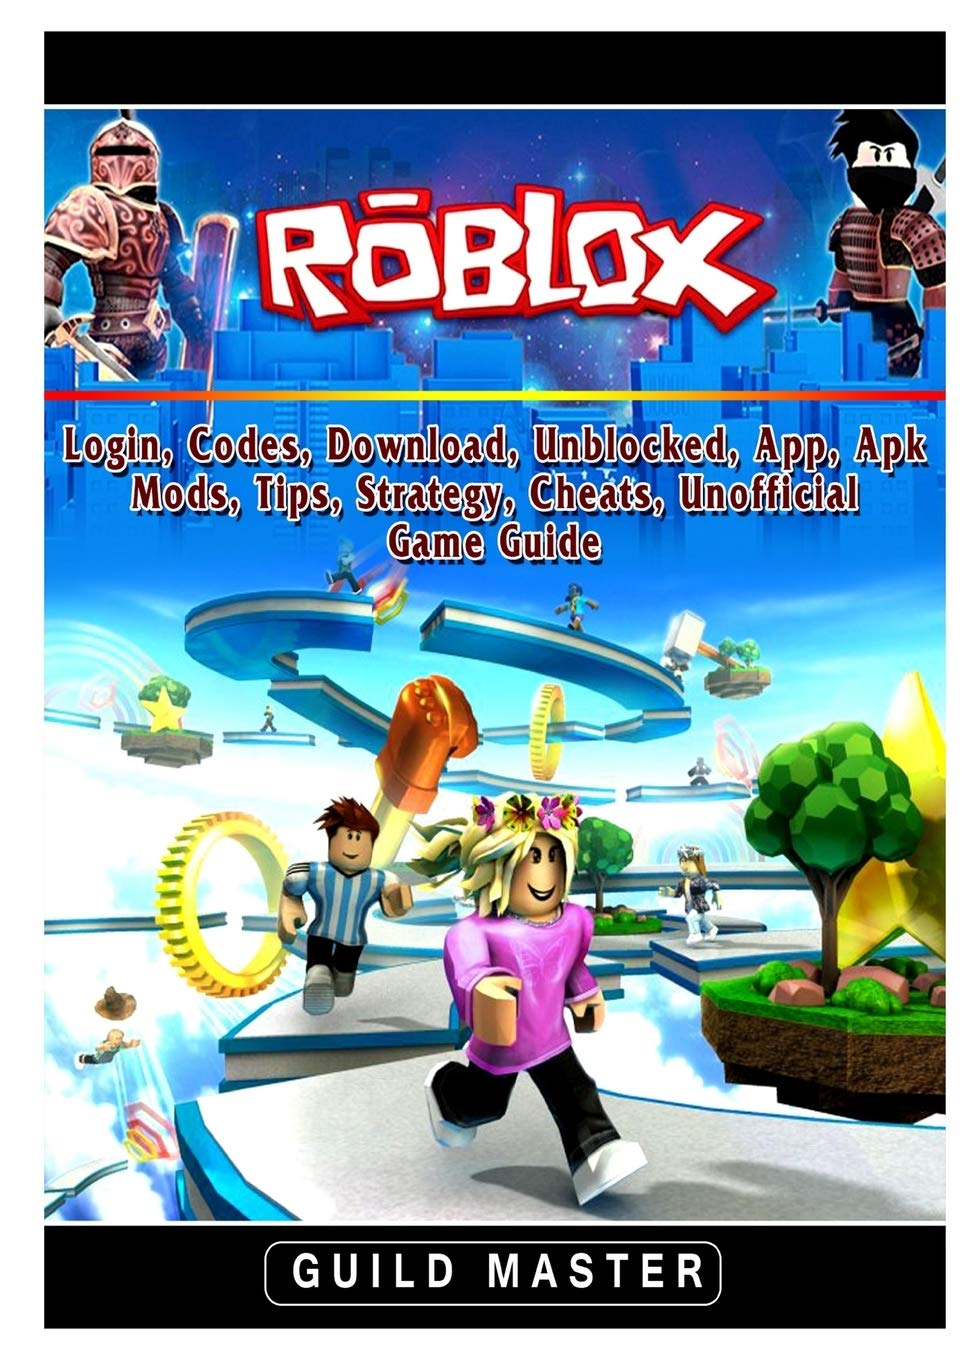 Unblocked Roblox No Download Roblox Login Codes Download Unblocked App Apk Mods Tips Strategy Cheats Unofficial Game Guide Master Guild 9780359798421 Amazon Com Books